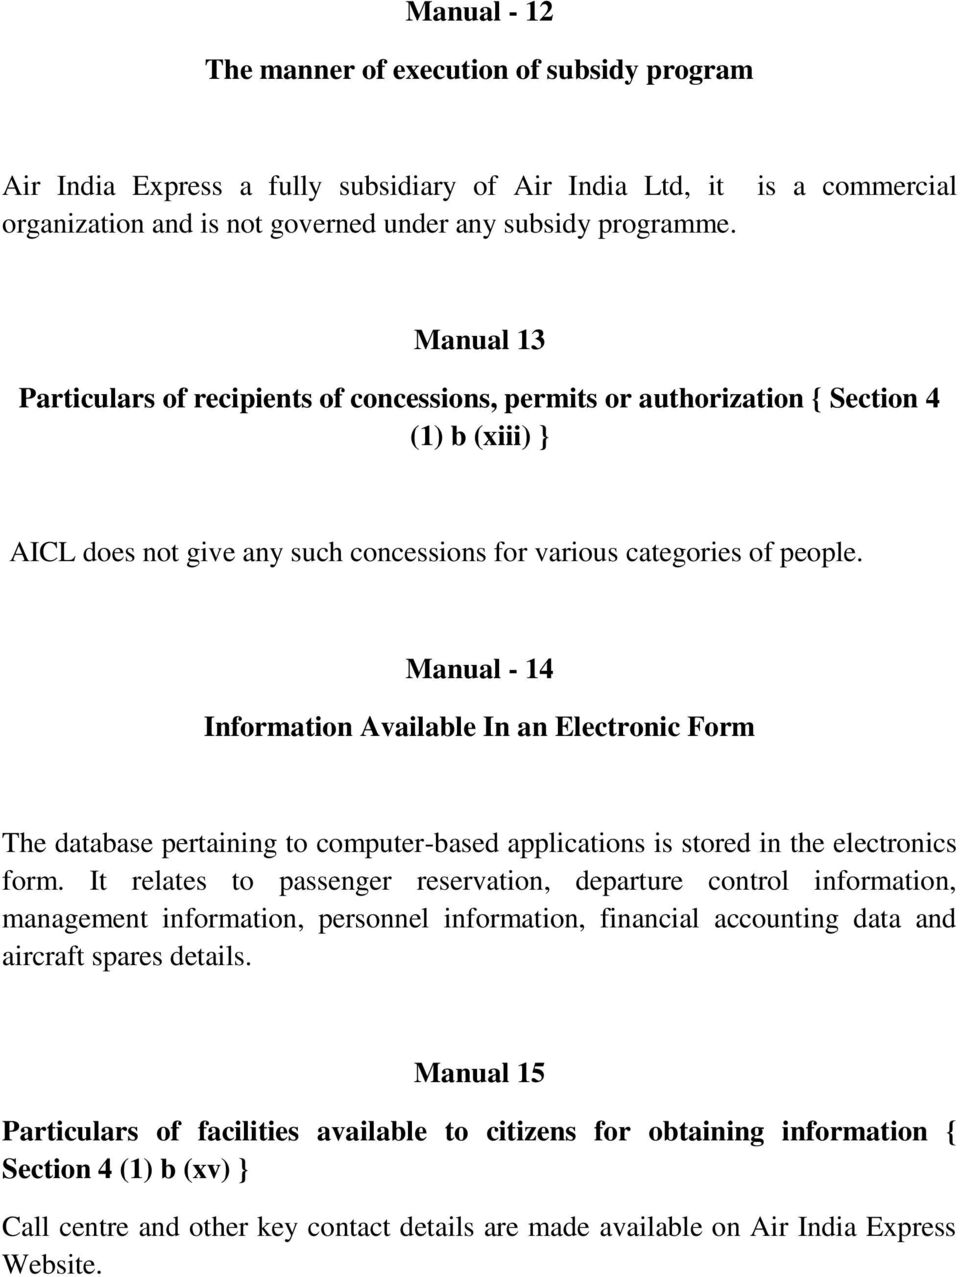 RTI Related information for Air India Express Website. Manual I ...